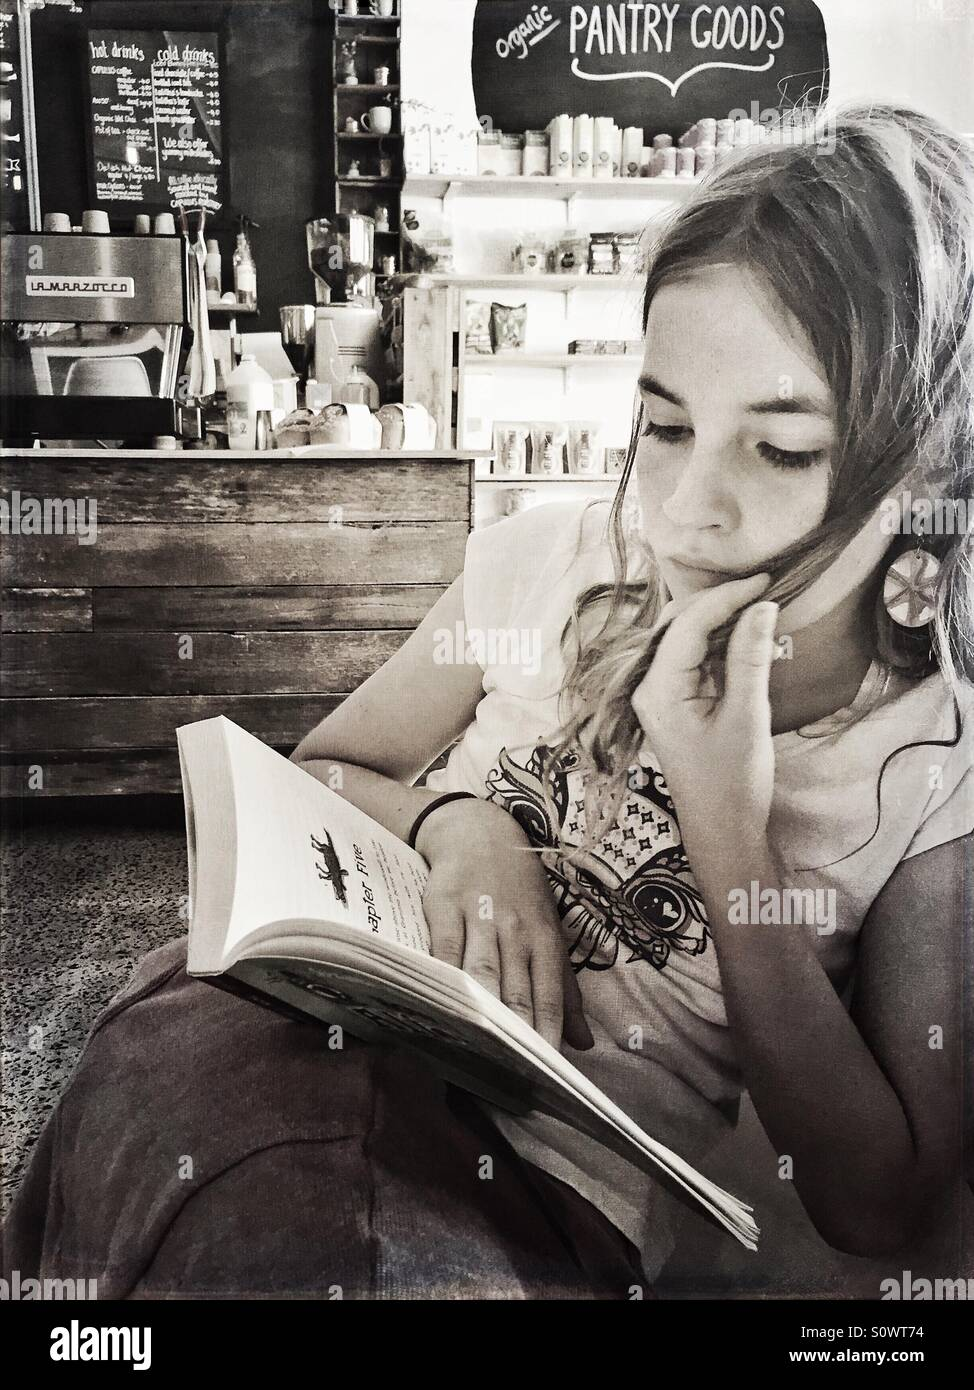 Black and white girl reading a book in rustic cafe - Stock Image